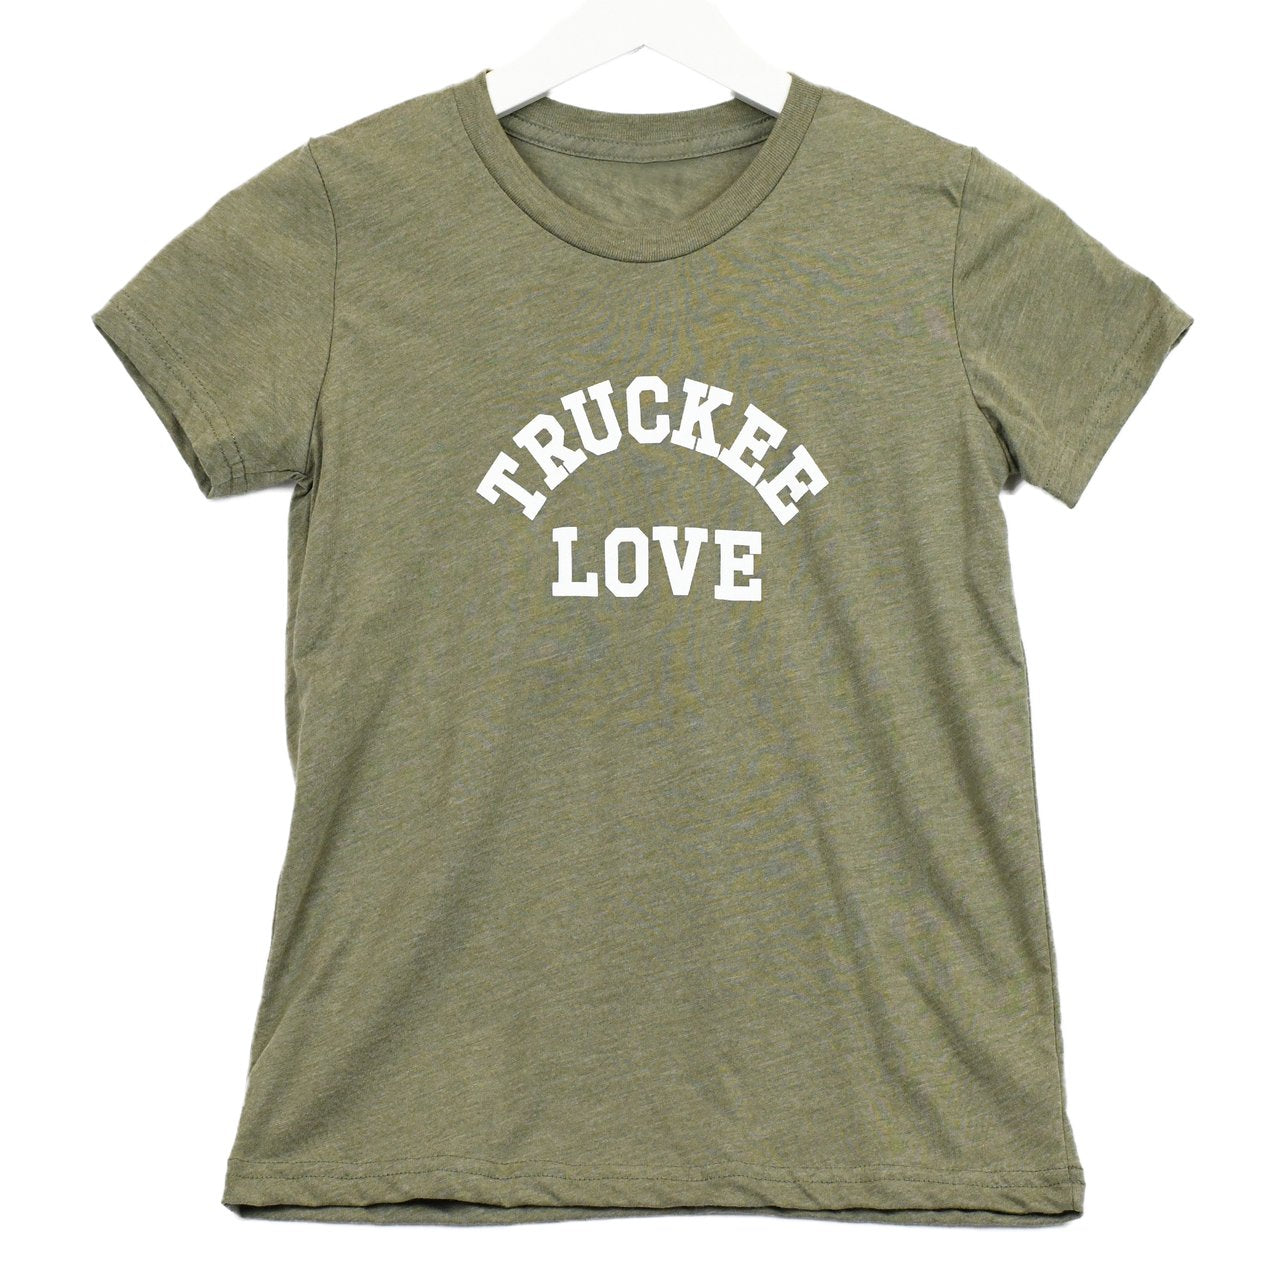 Truckee Love T-Shirt - Olive Green